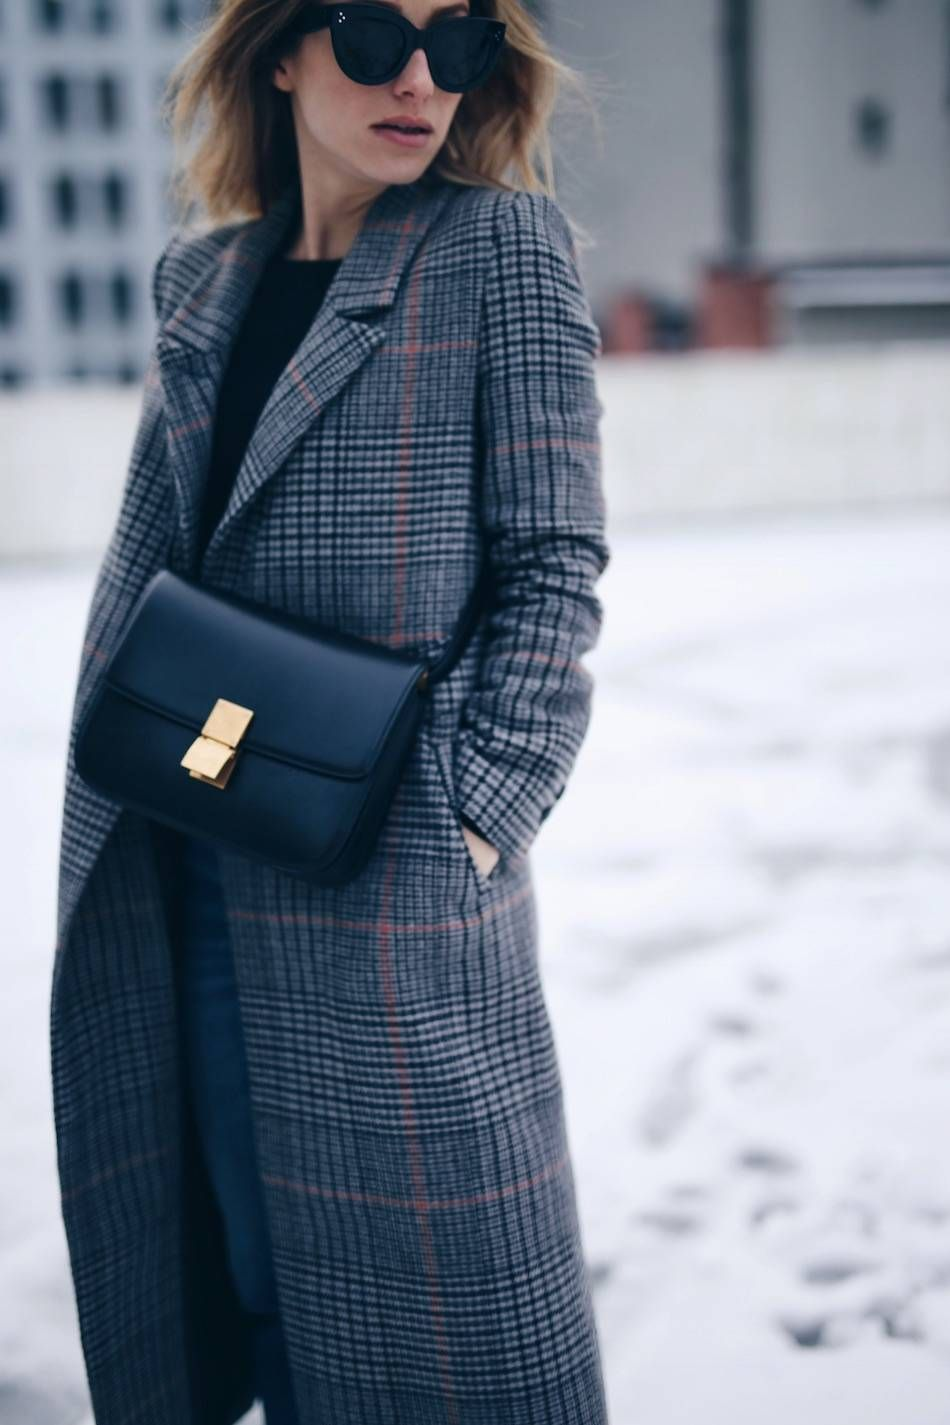 7a6125d73882 Style and beauty blogger Jill Lansky of The August Diaries in H M plaid coat  with Celine black box bag and Celine Caty sunglasses